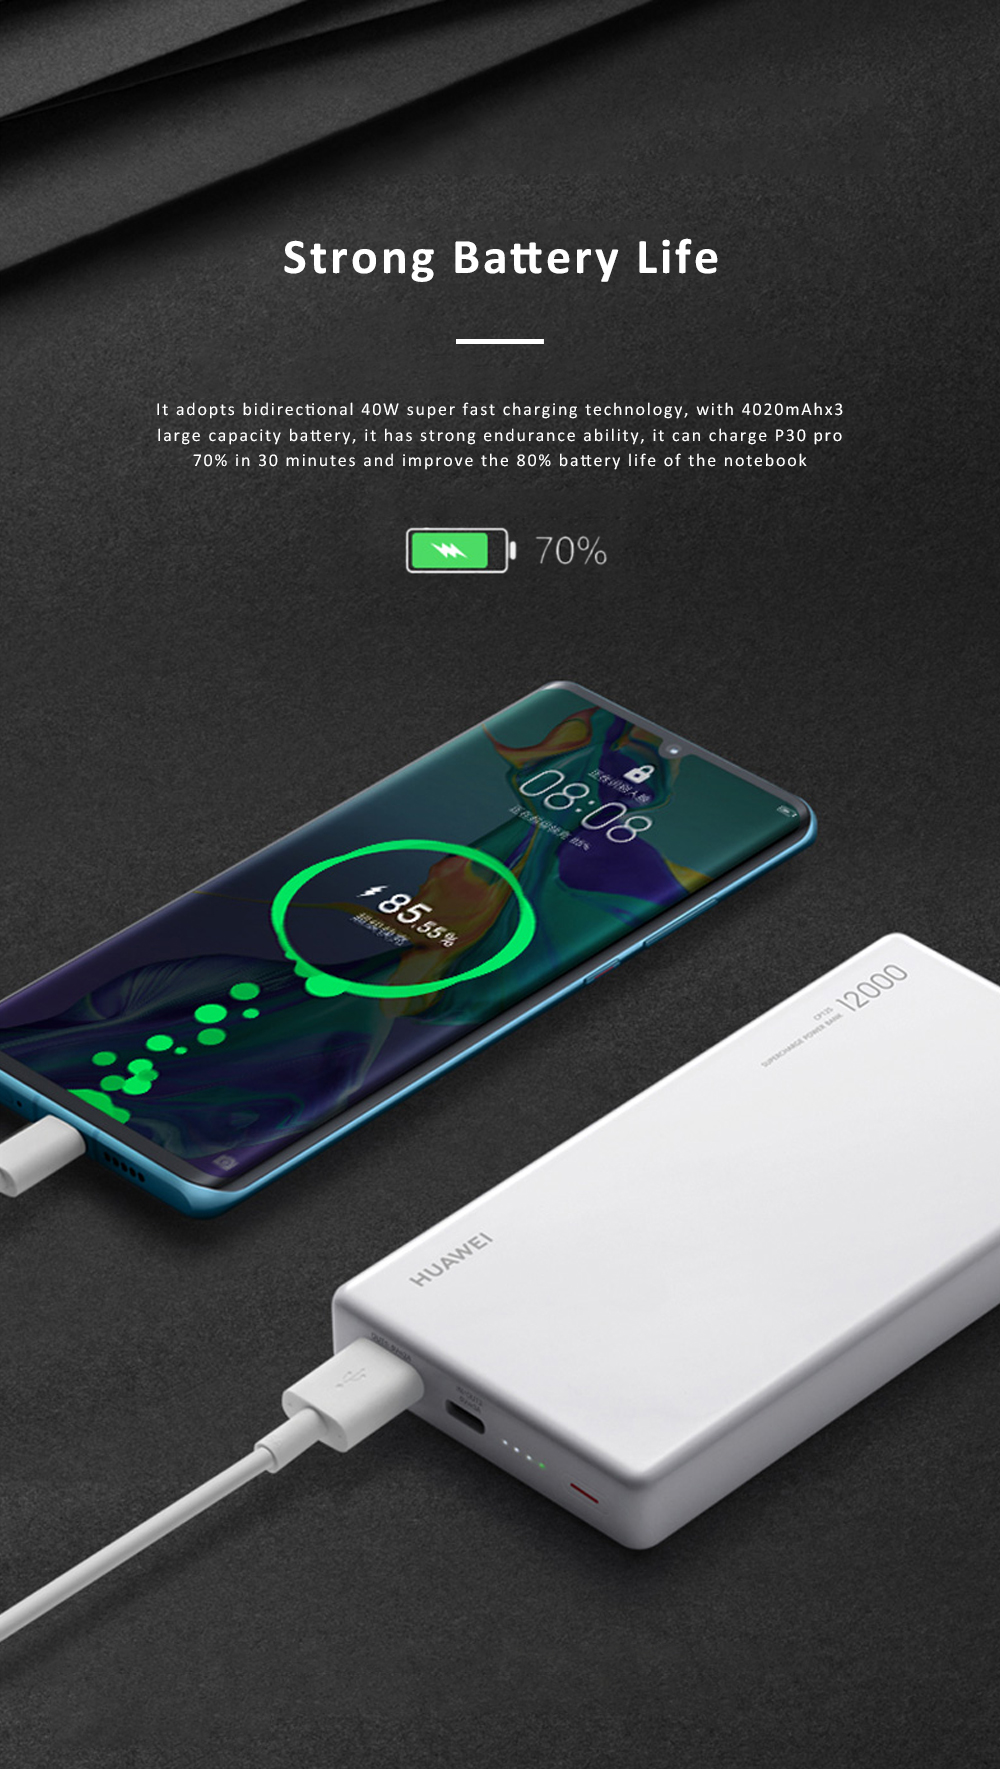 Huawei Mobile Phone Power Bank Wireless Portable Charger 12000 mAh 40W External Battery Pack Fast Charge Treasure 1